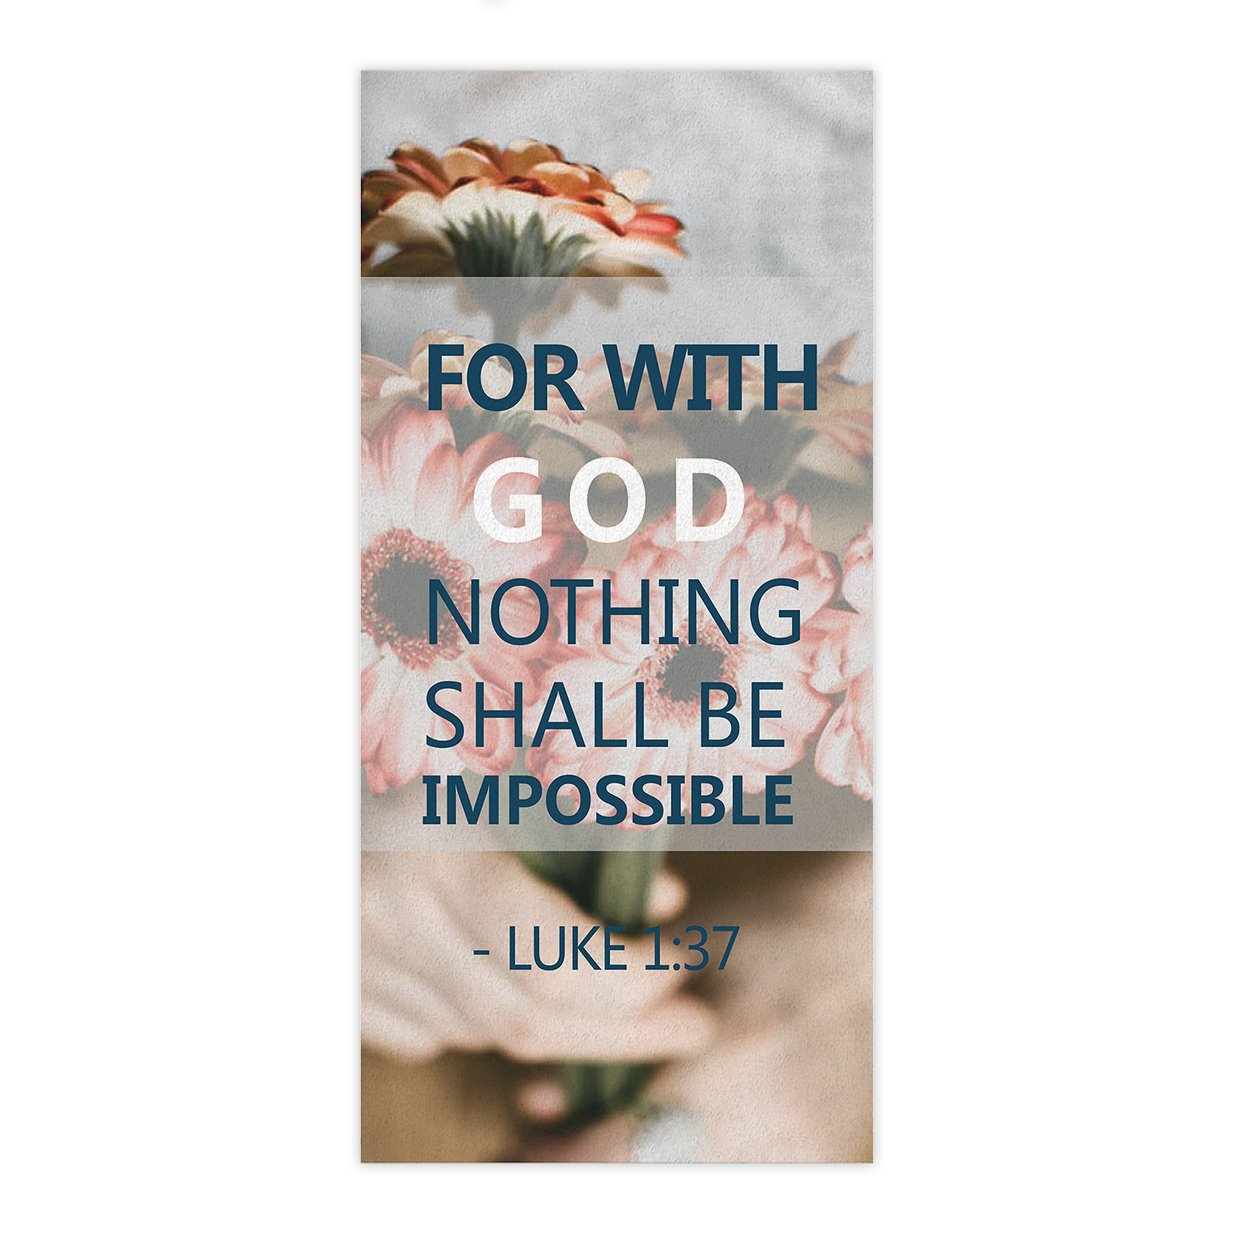 Floral Decor Beach Towel Quick Dry Christian Bible Verse Scripture Quotes Shower Towels Ultra Soft Cotton Material for Bathroom, Hotel and Spa Quality, 27.5 x 55 inch